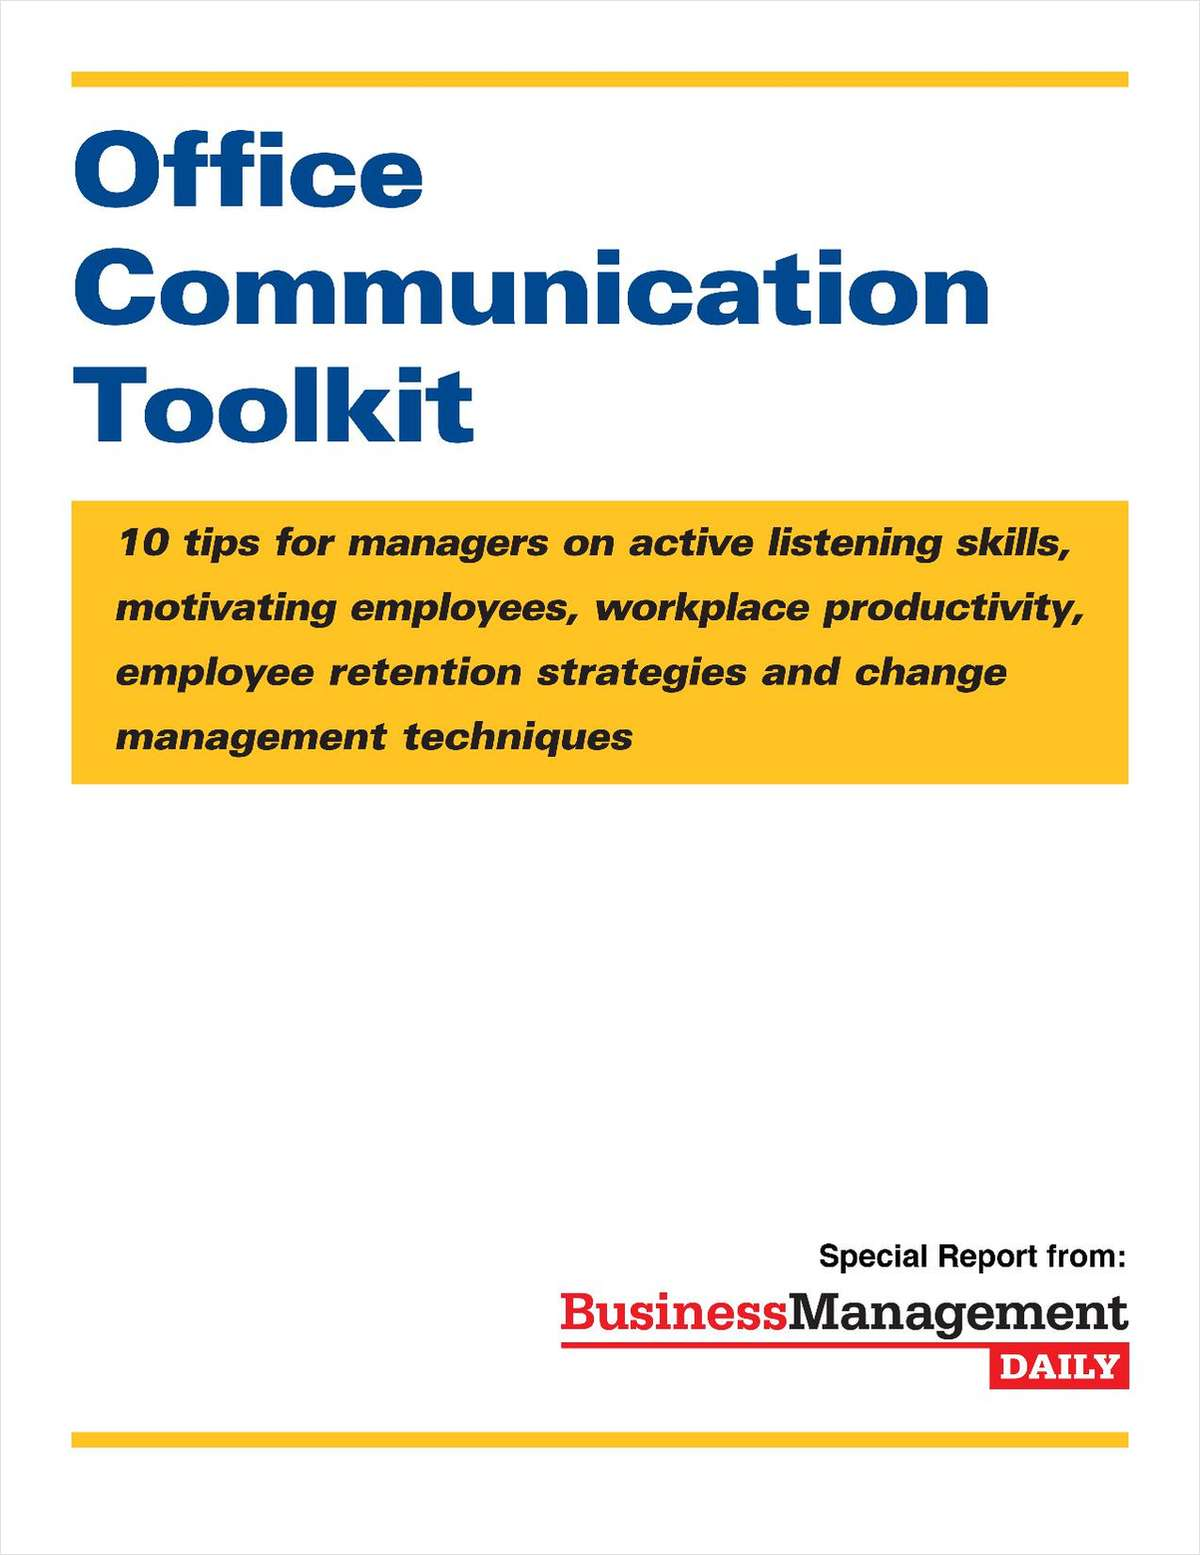 The Office Communication Toolkit: 10 Tips for Managers